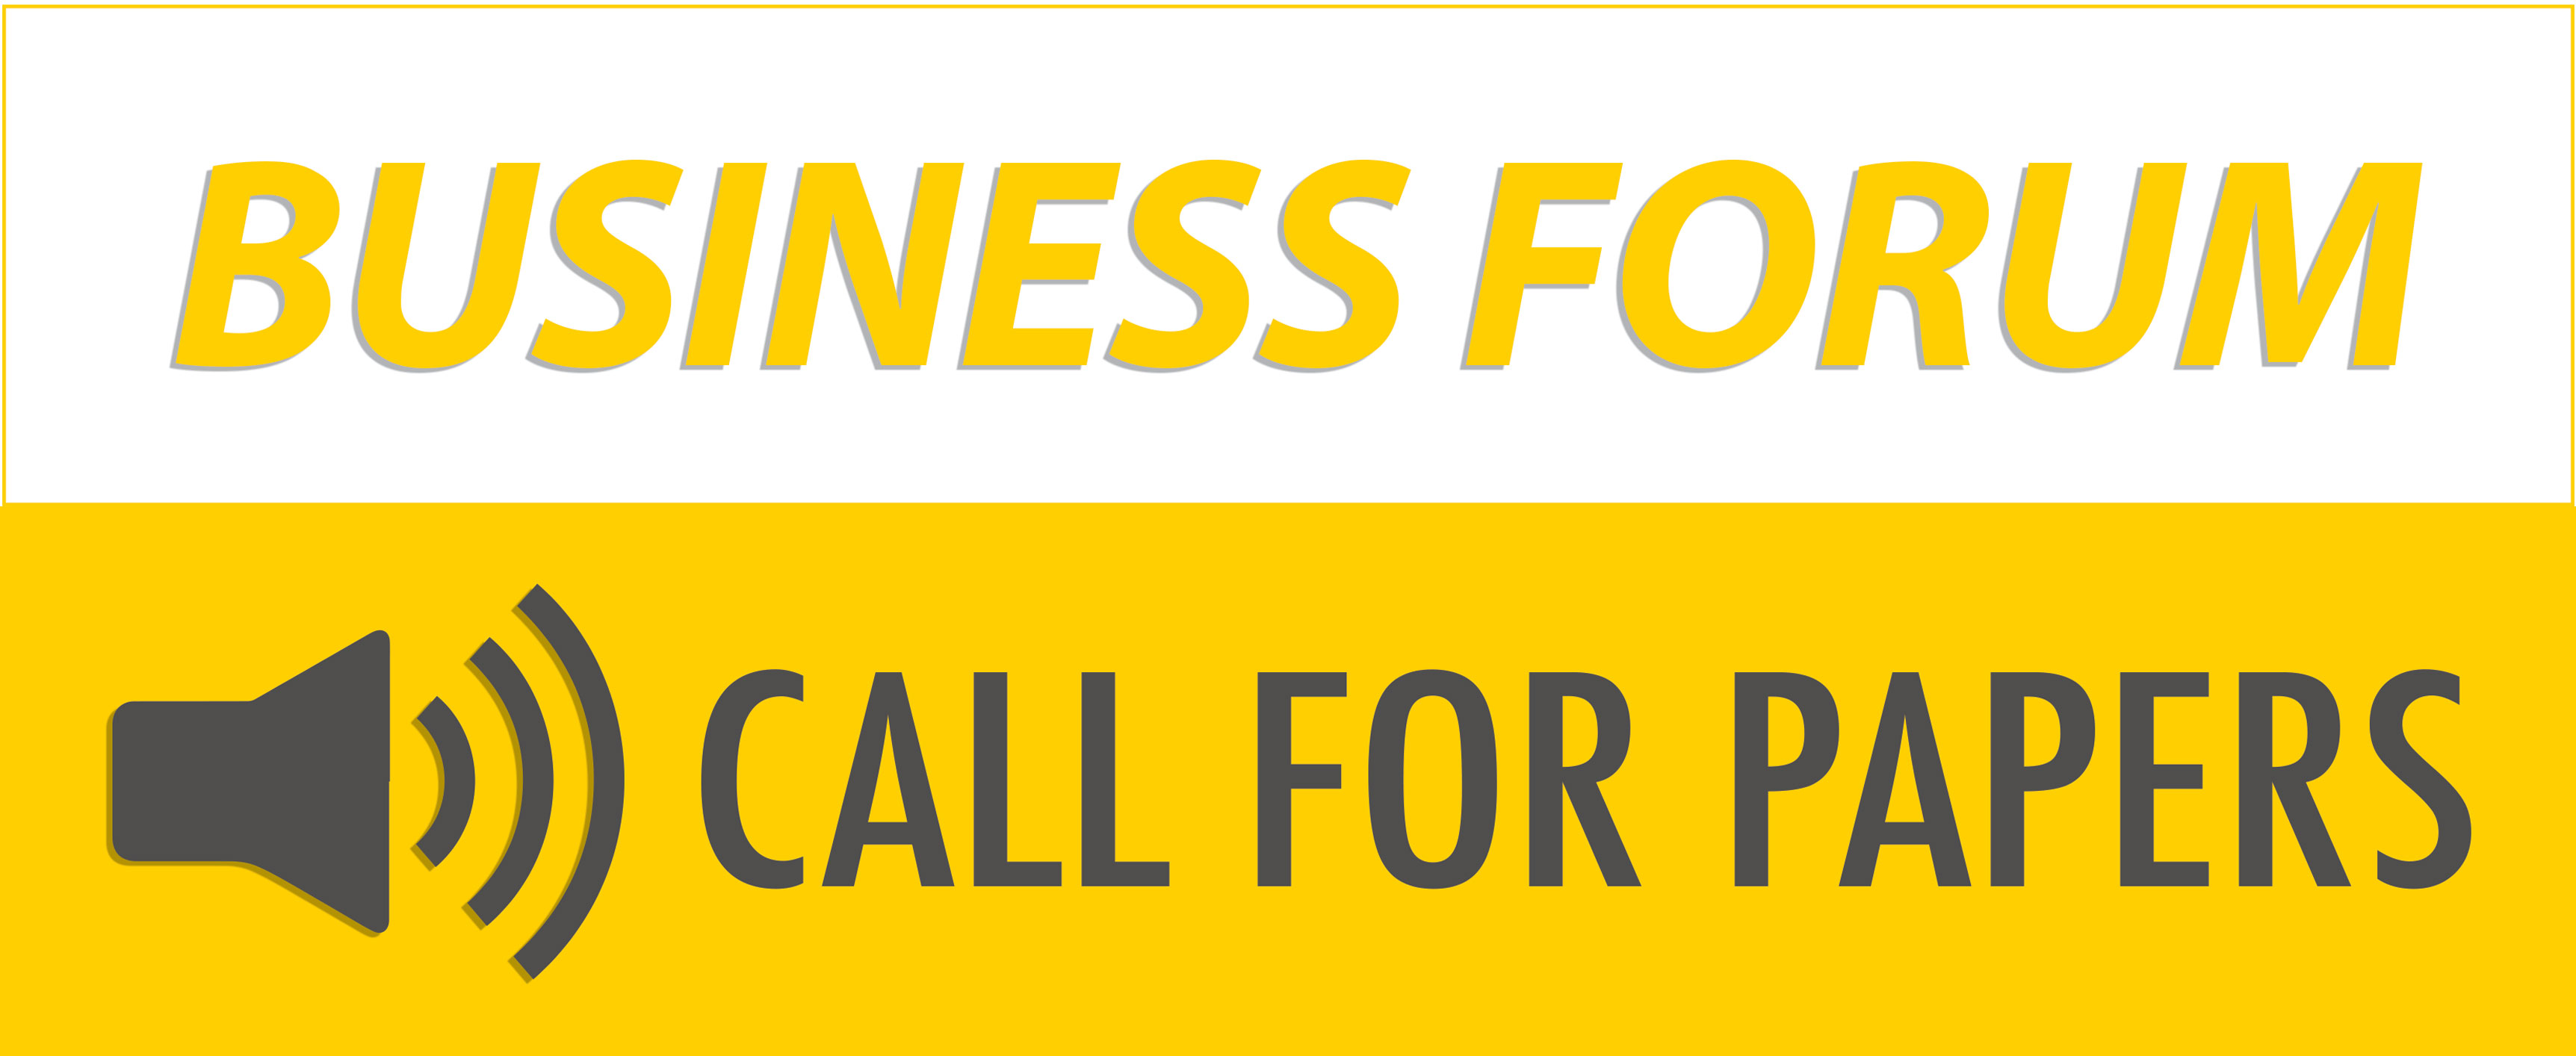 Business Forum Call for Paper